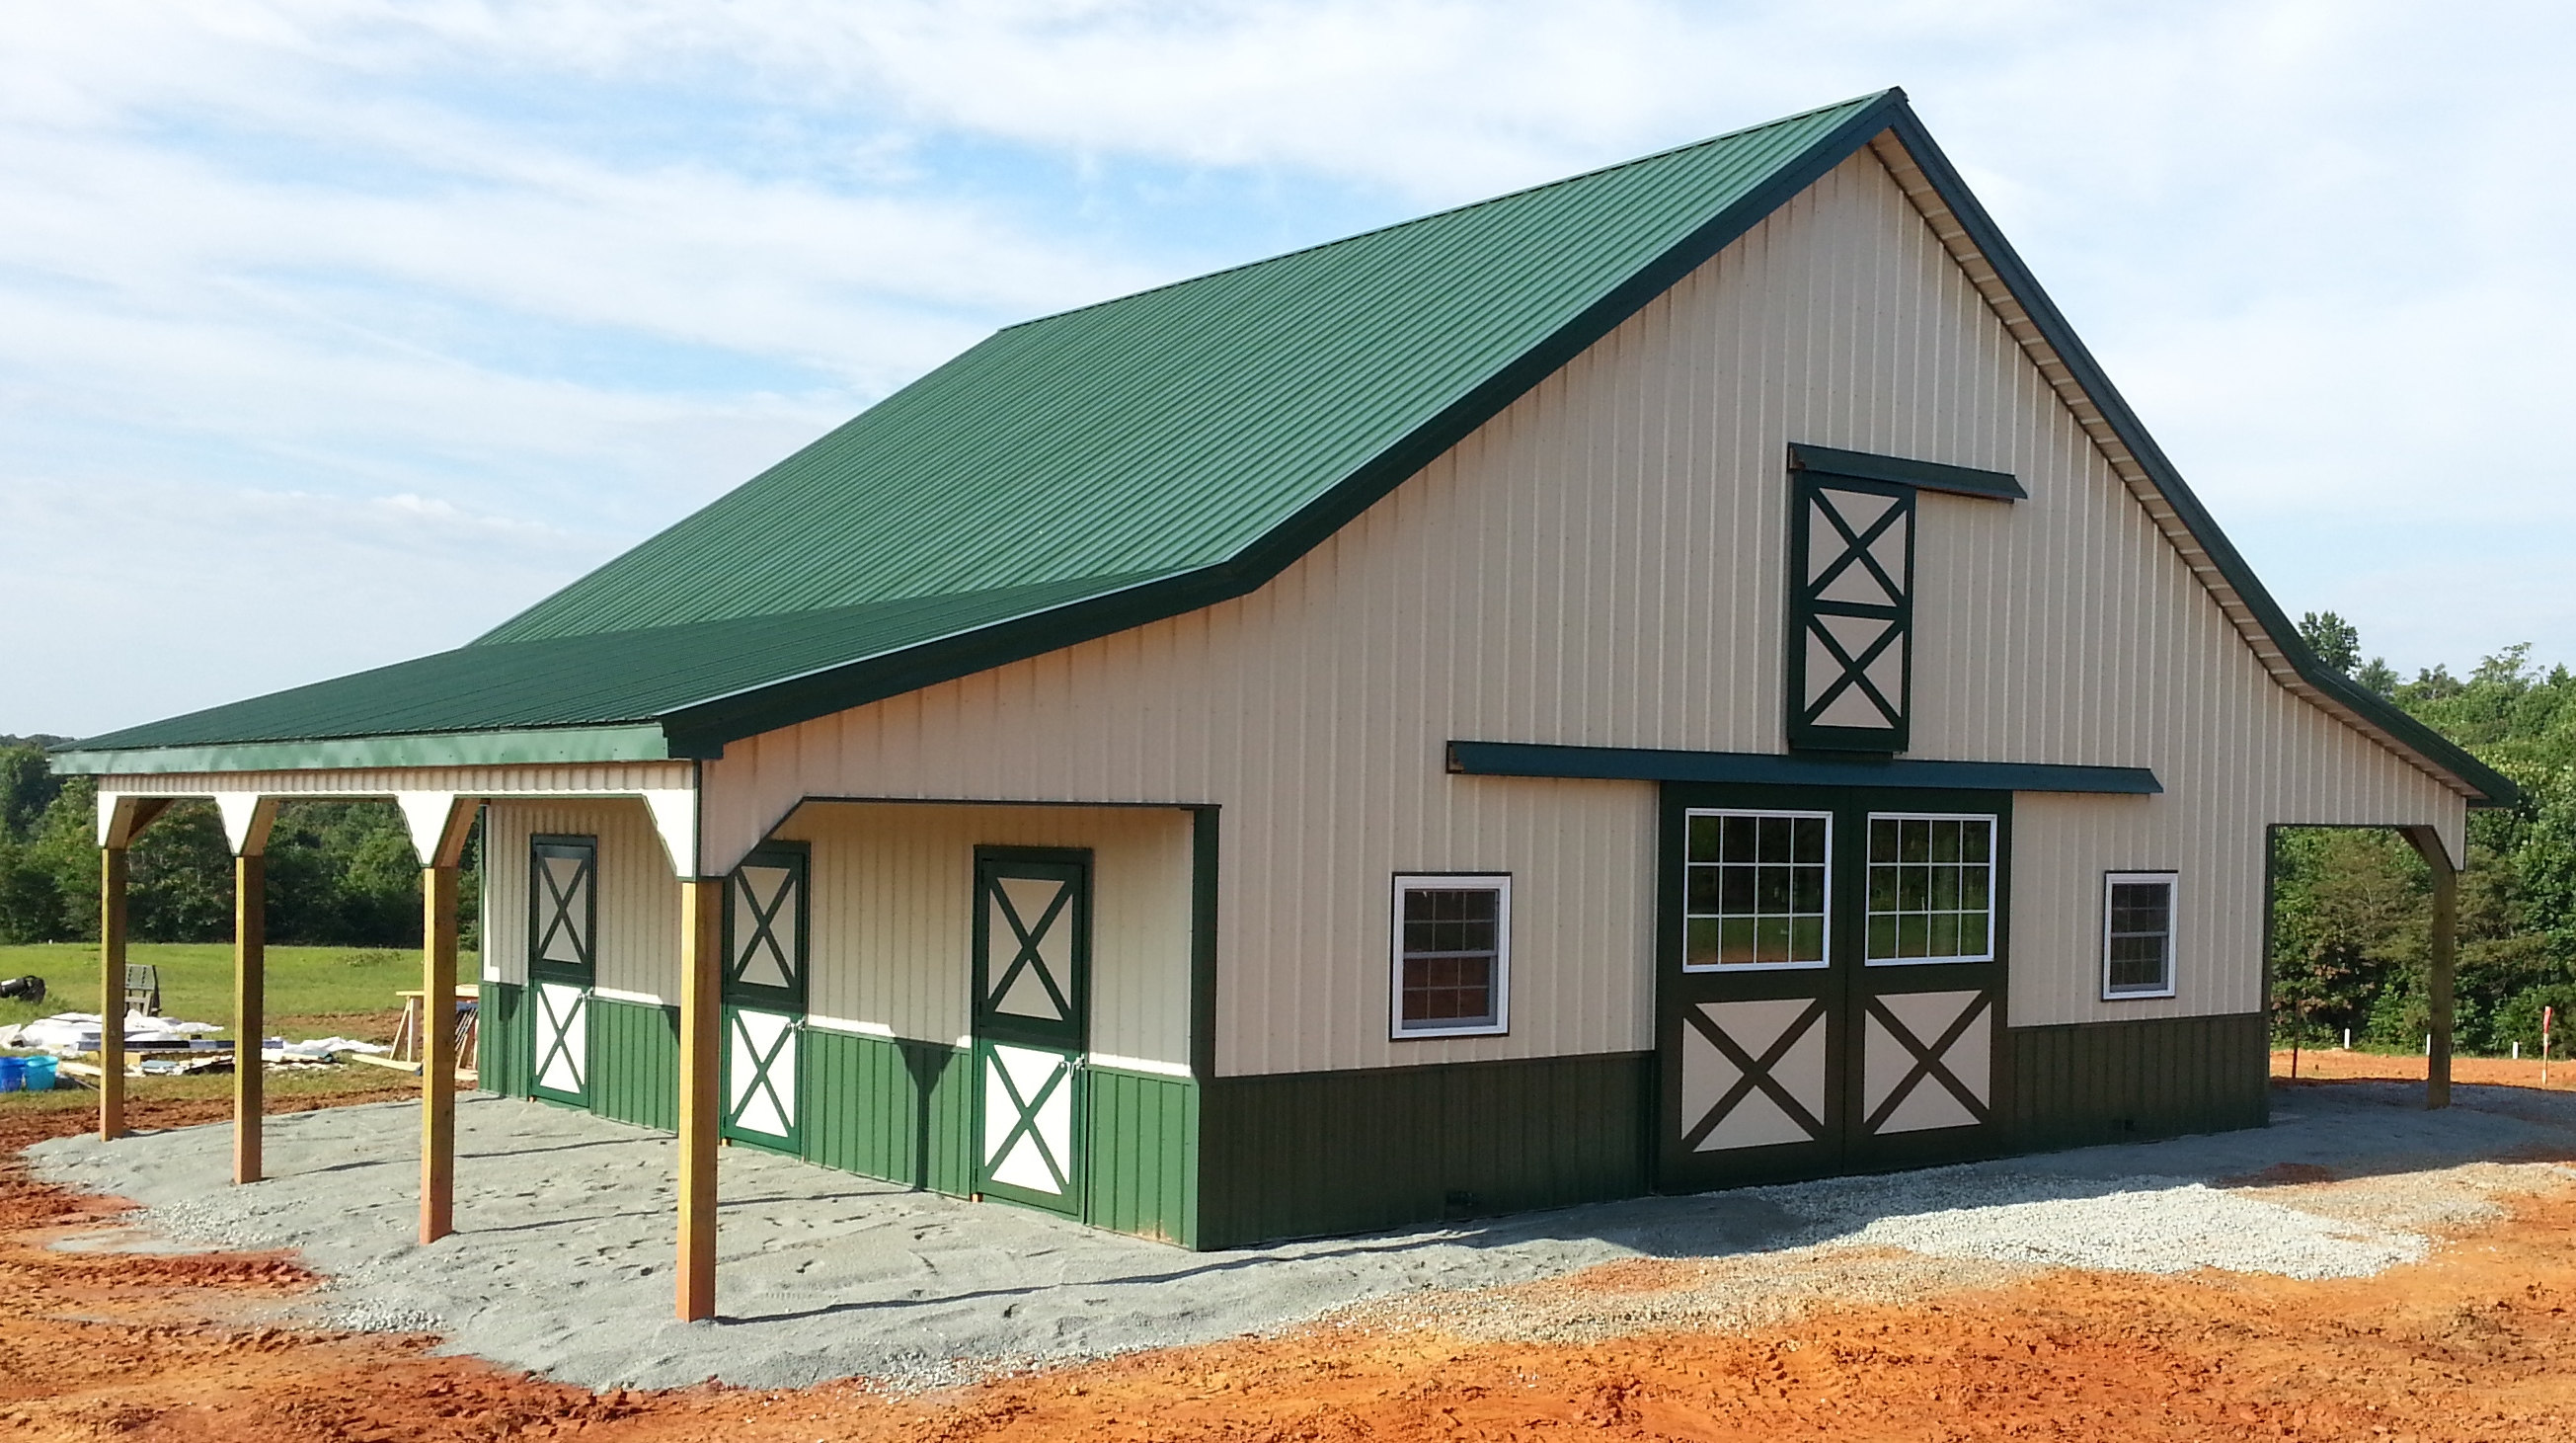 Residential pole barn kits house plans Residential pole barn homes